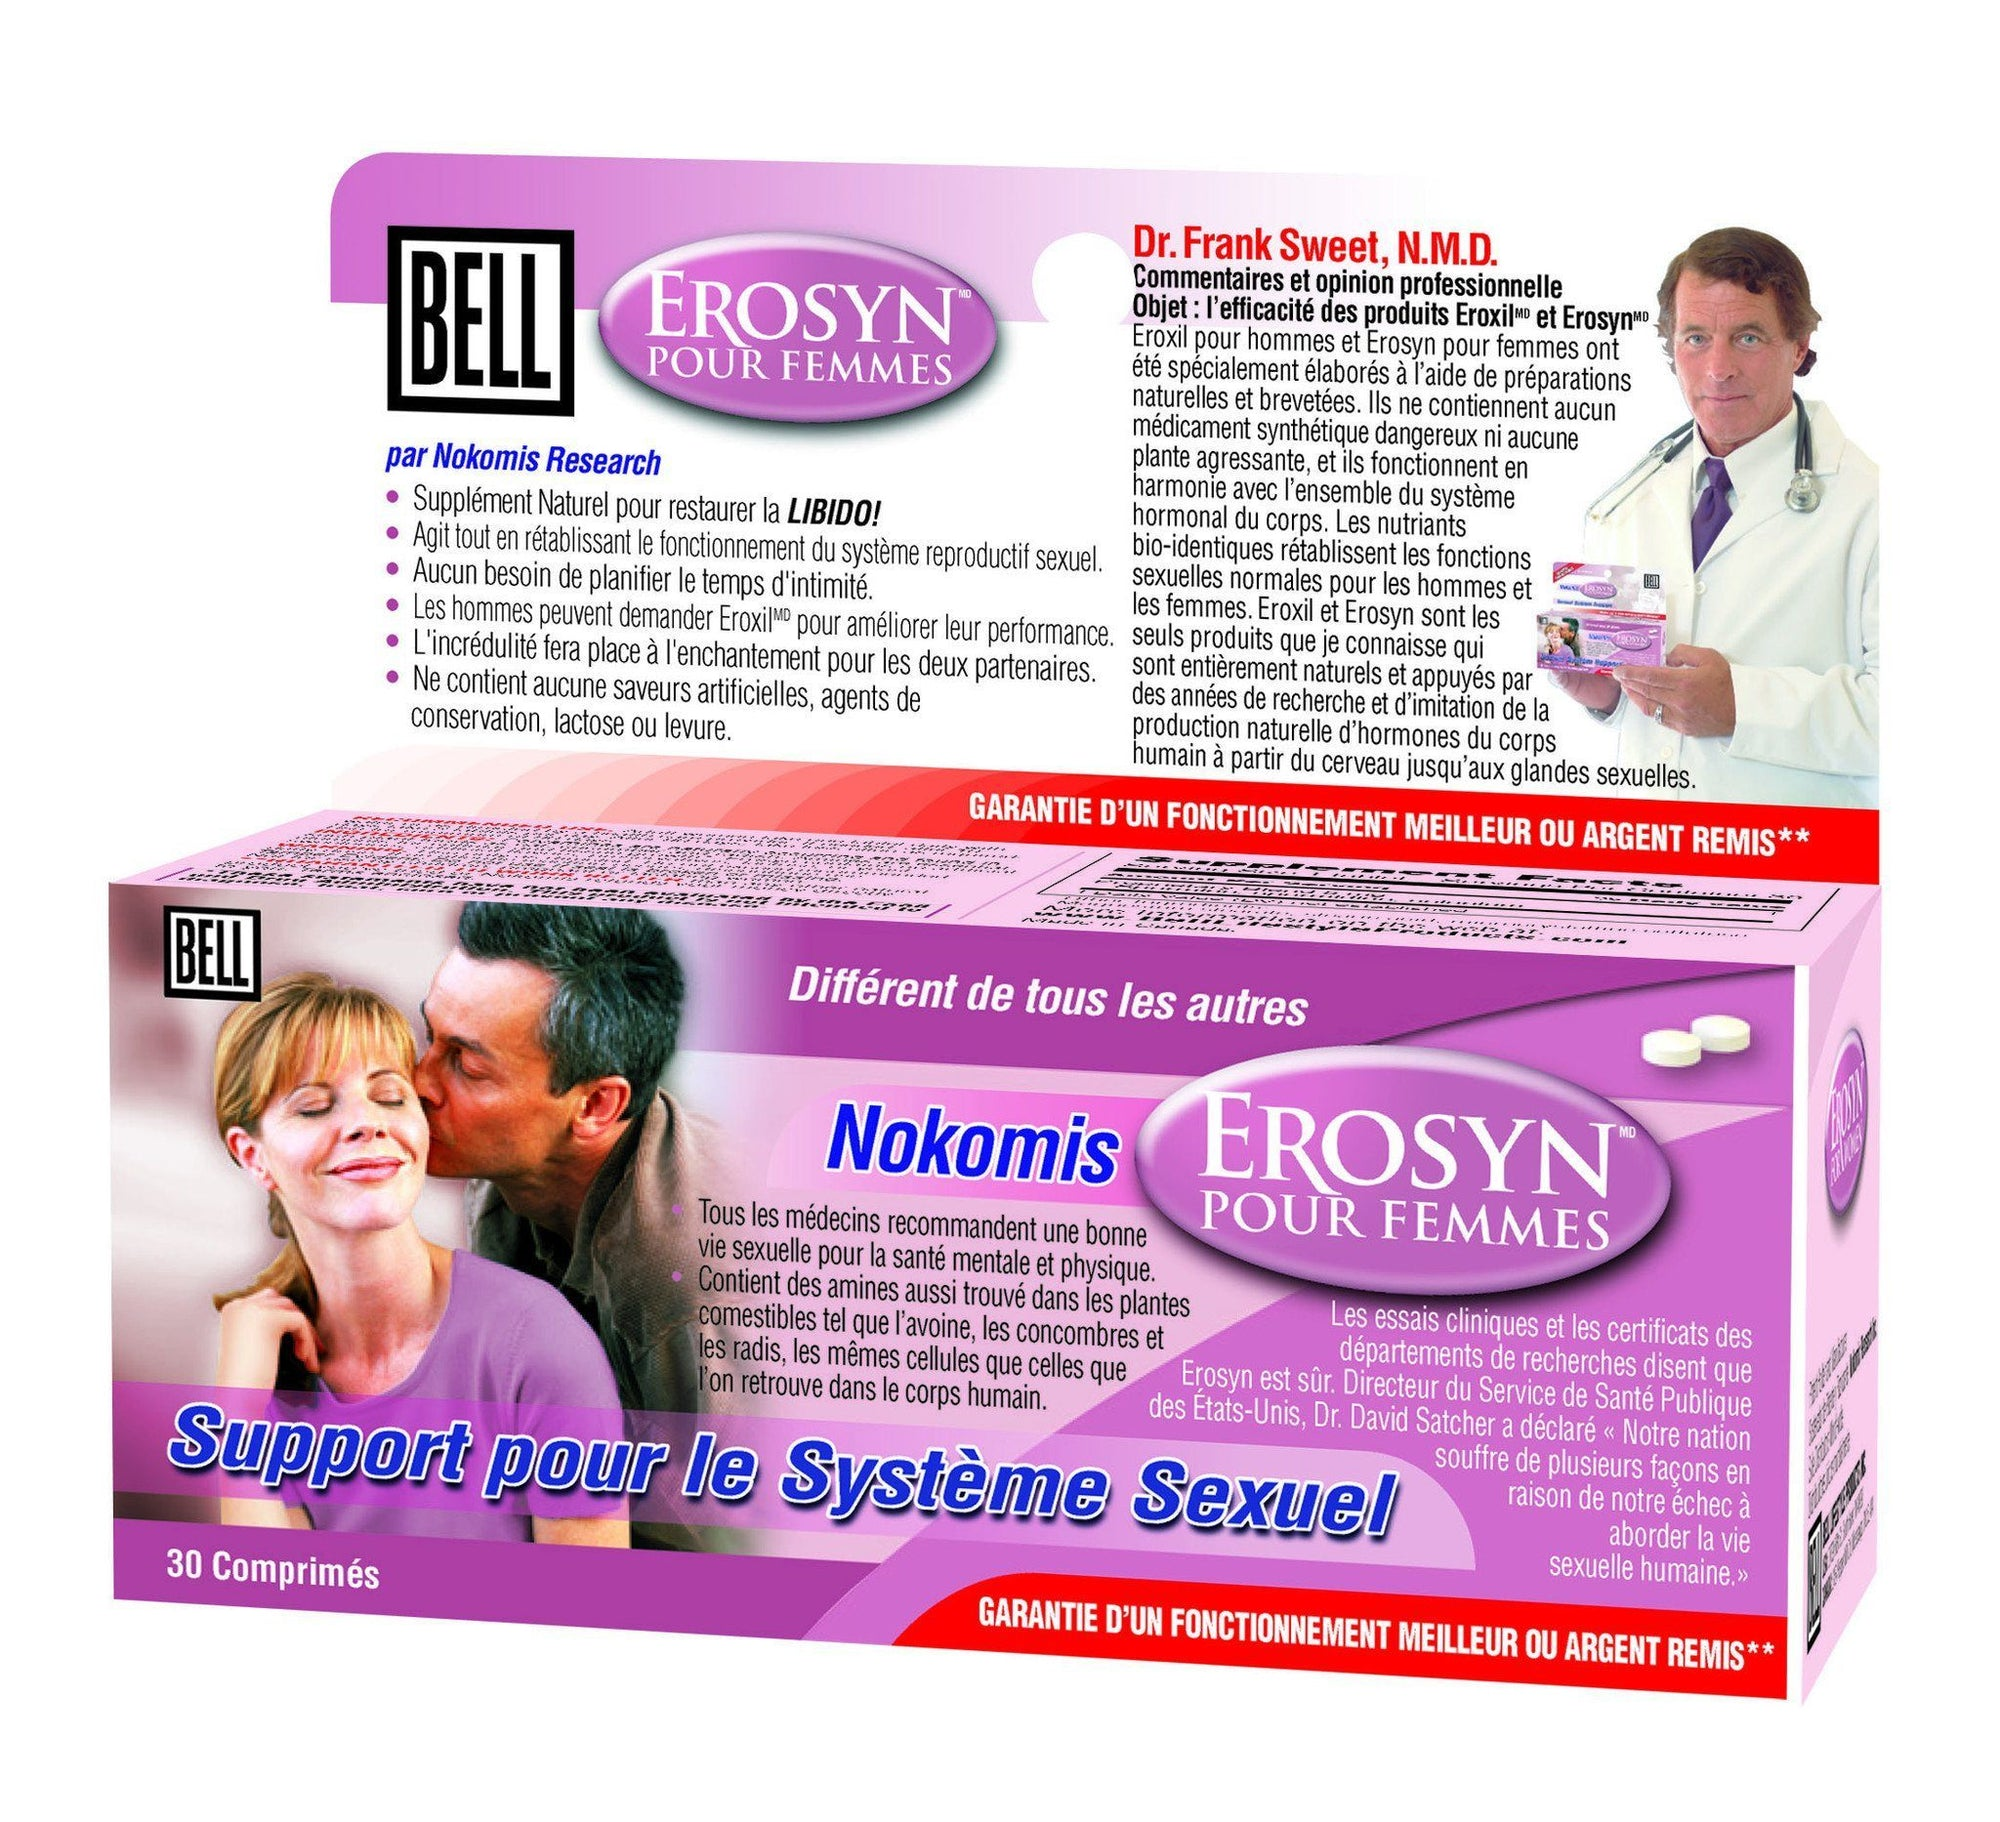 Supplements & Vitamins - Bell - Nokomis Erosyn For Women, 30 Caps